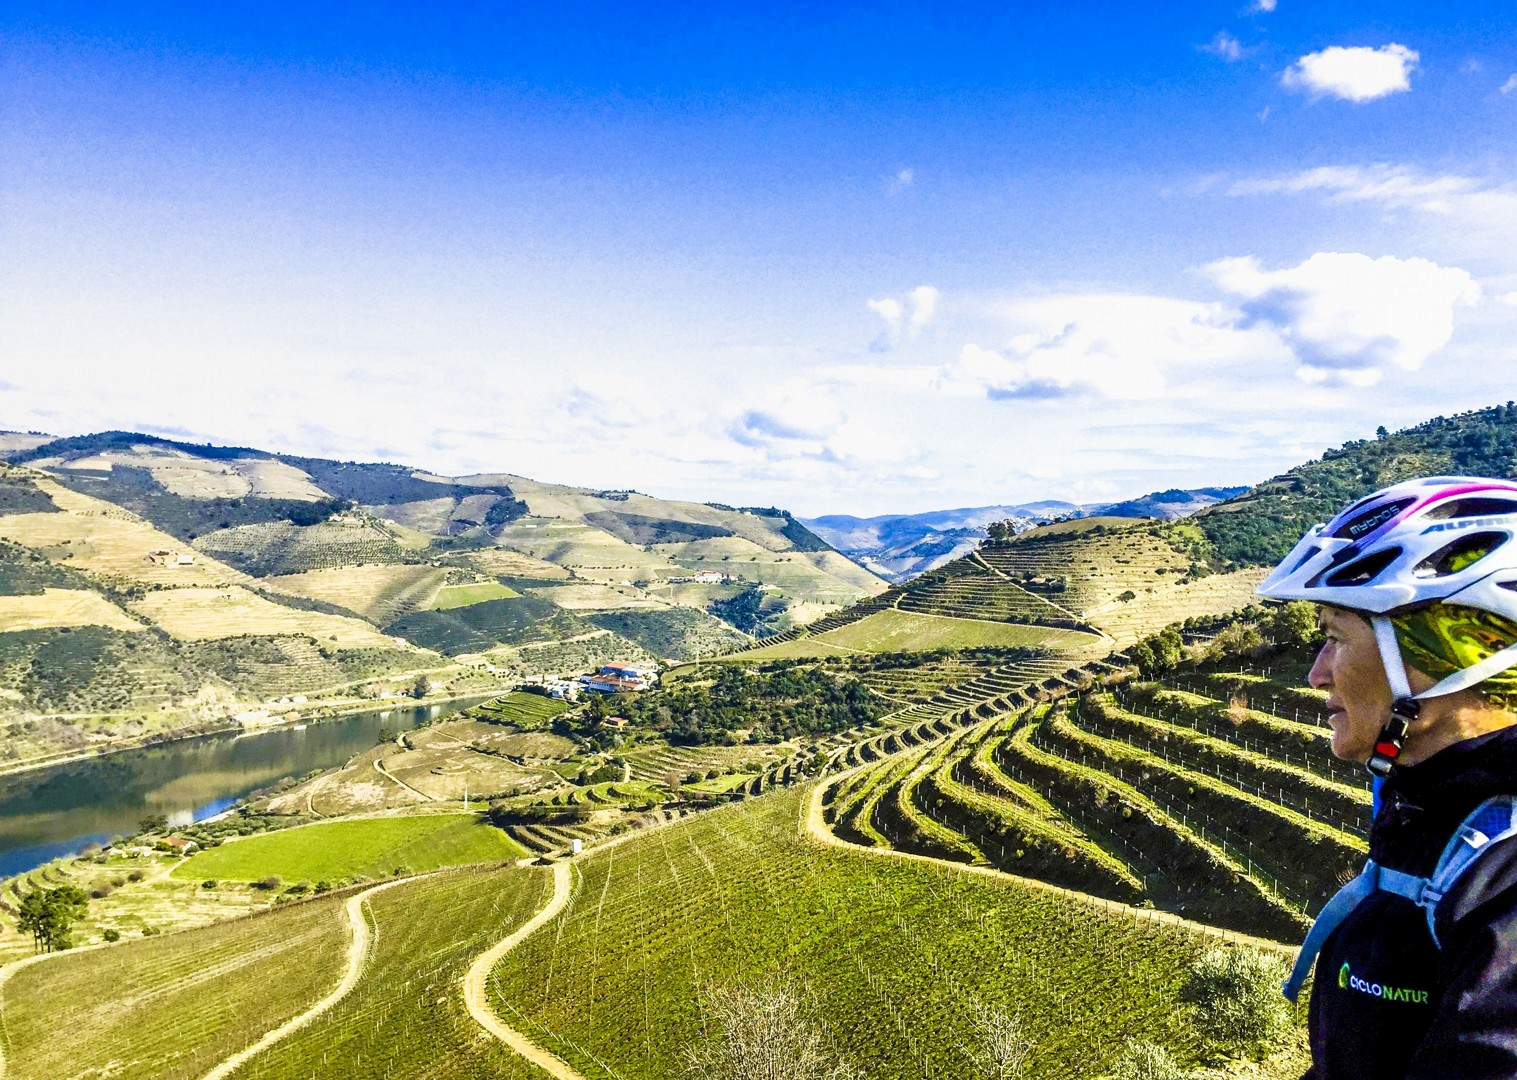 mountains-of-the-douro-port-and-wine-self-guided-cycling-tour-saddle-skedaddle.jpg - Portugal - Port and Wine - Self Guided Leisure Cycling Holiday - Leisure Cycling